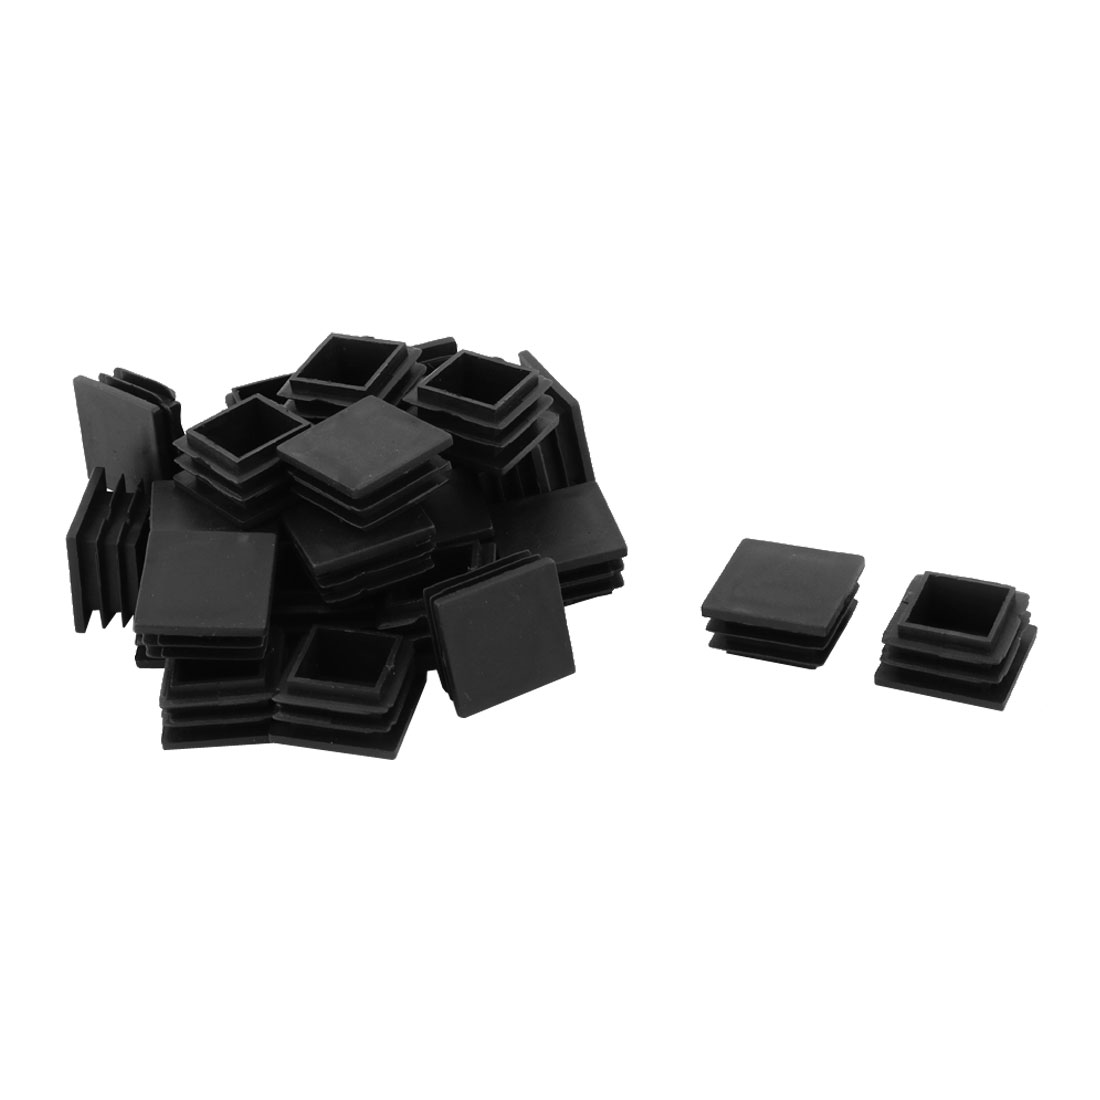 Home Furniture Plastic Square Shaped Feet Protector Caps Tube Insert Black 28pcs